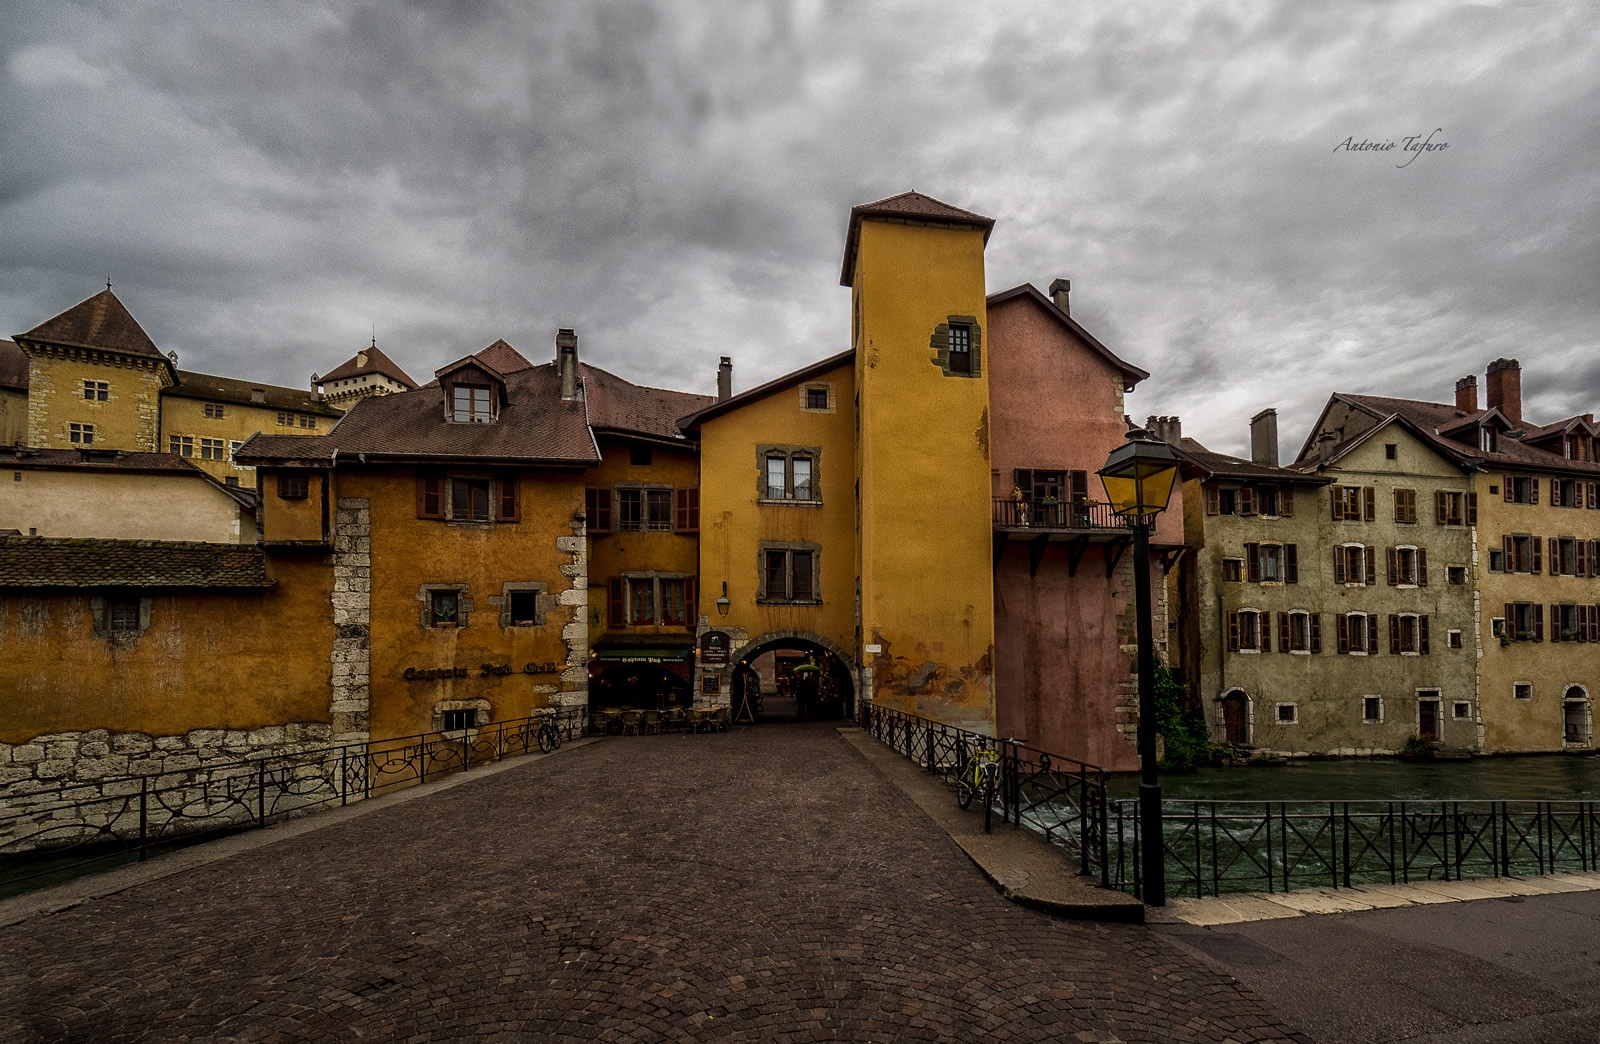 a glimpse of Annecy by Antonio Tafuro